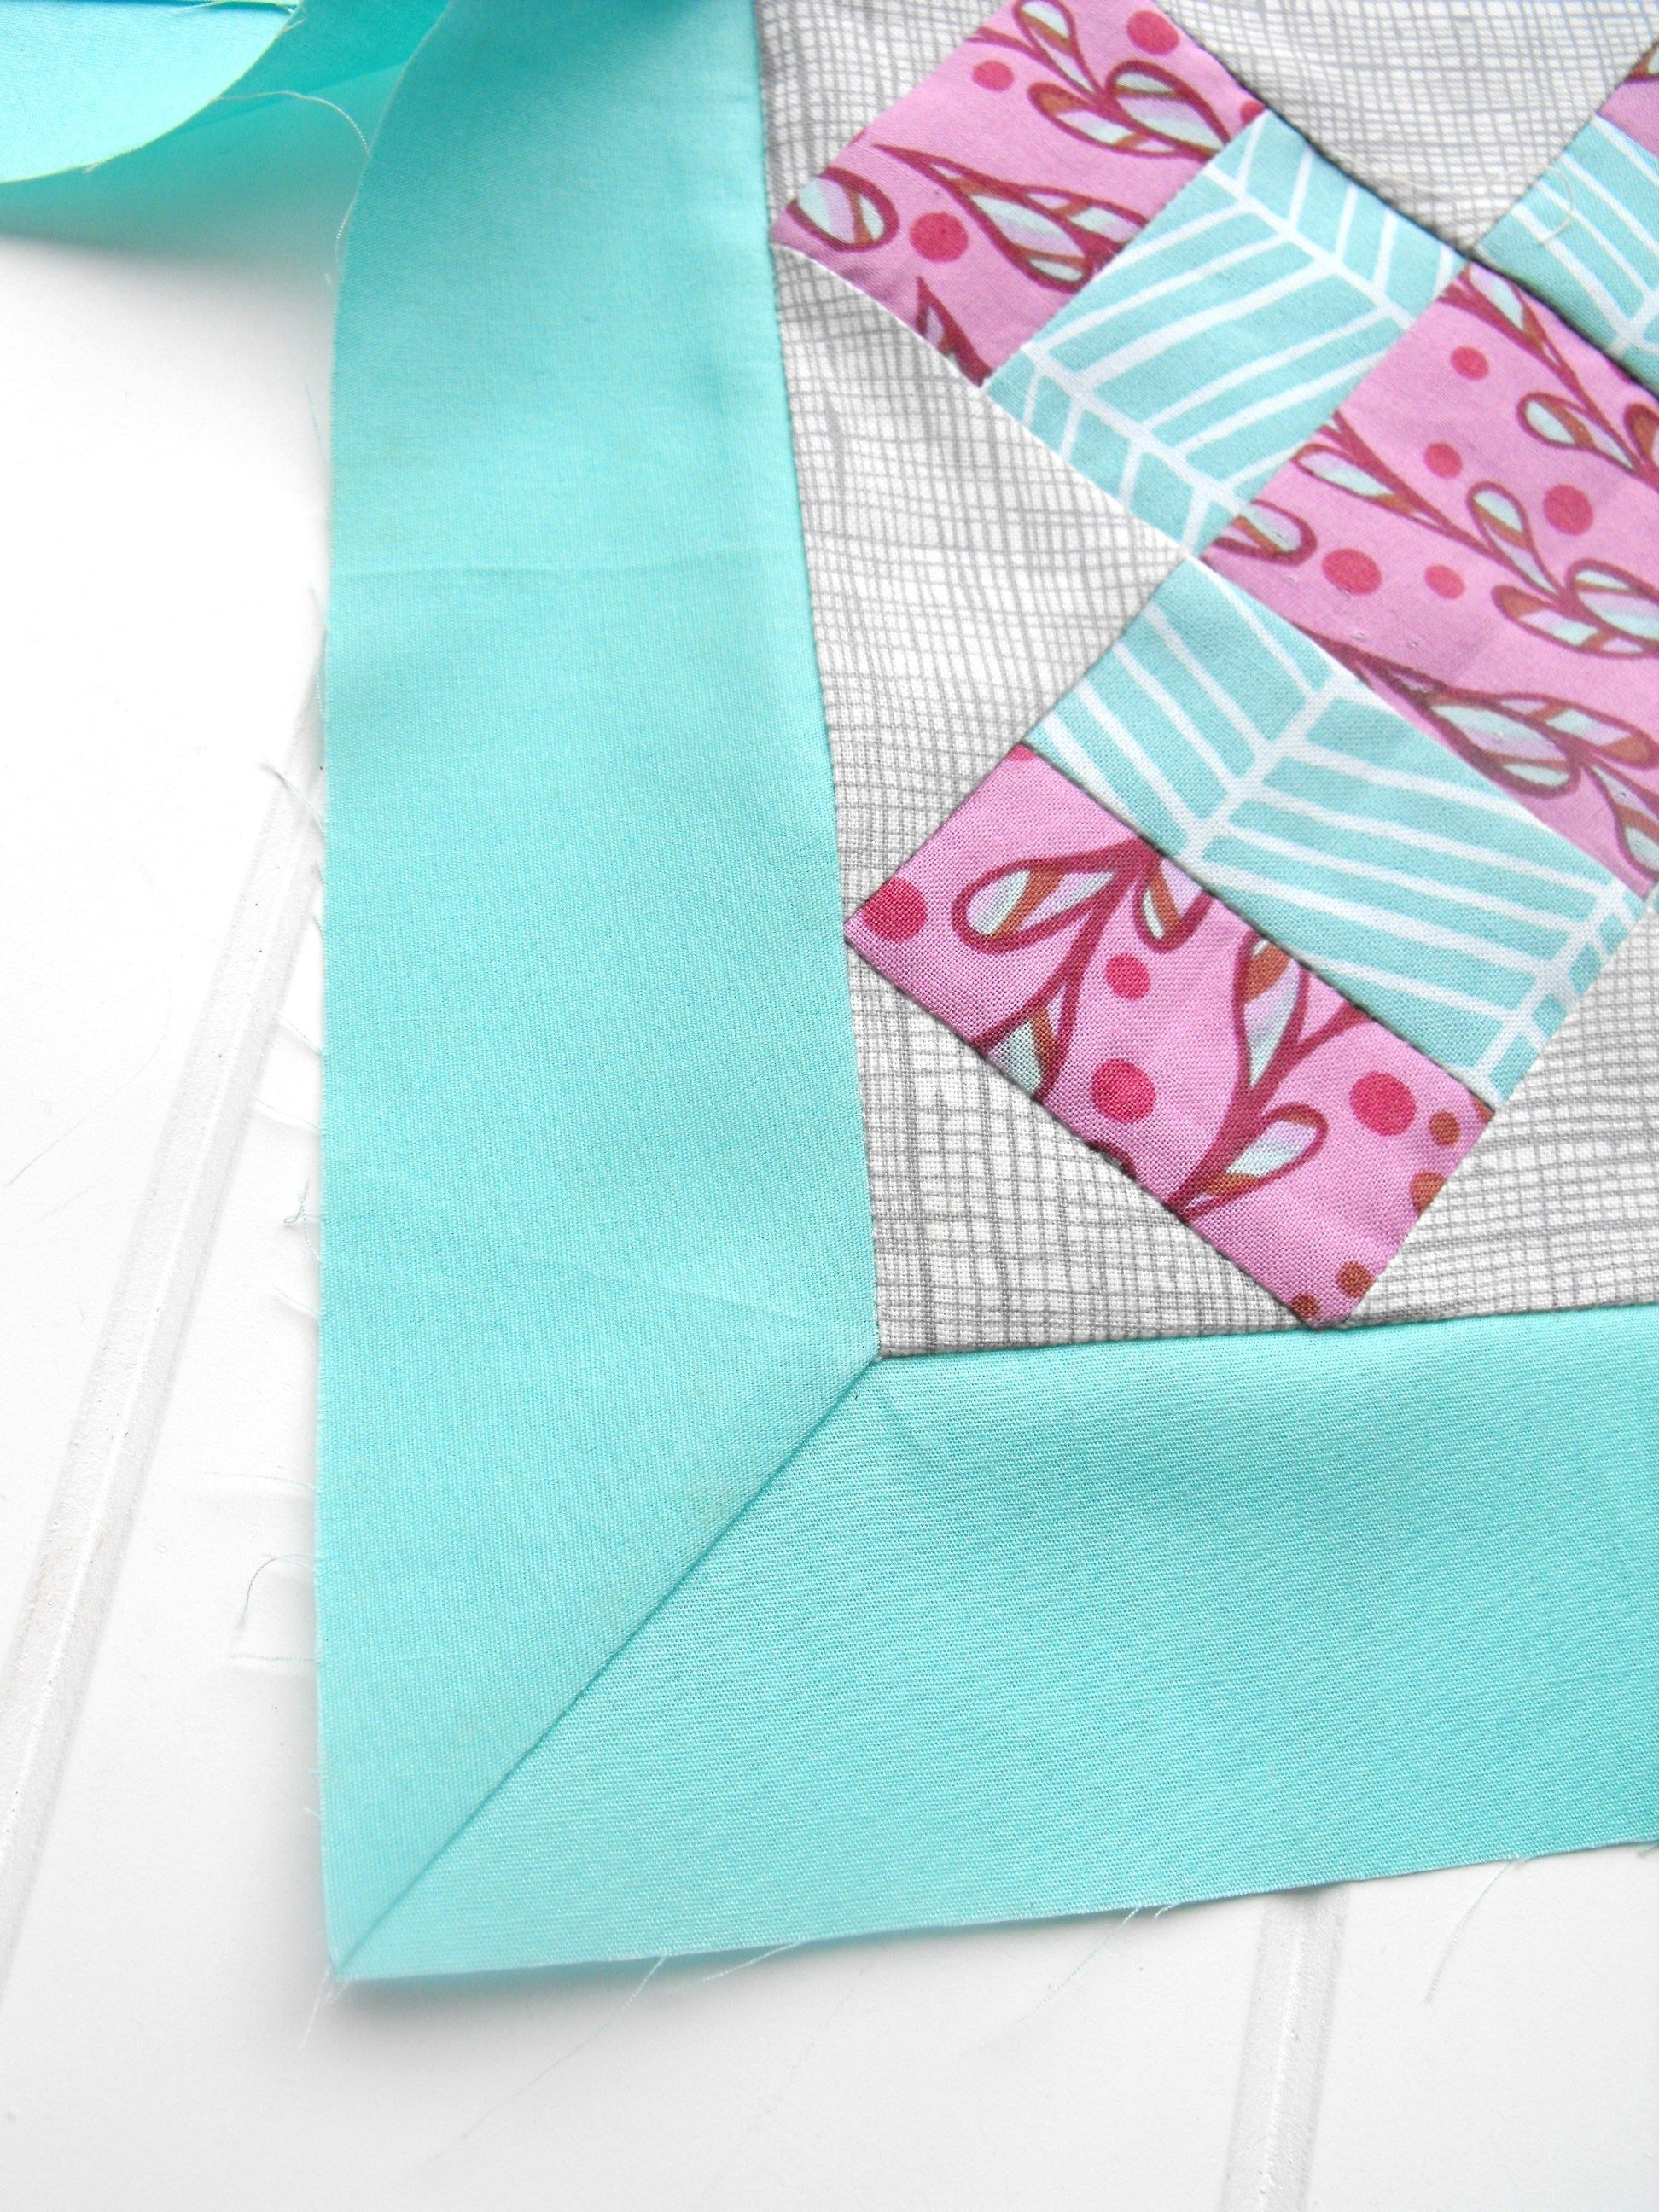 How to Make Panties: A FREE Lingerie Sewing Tutorial | Quilt ... : binding quilt edges - Adamdwight.com